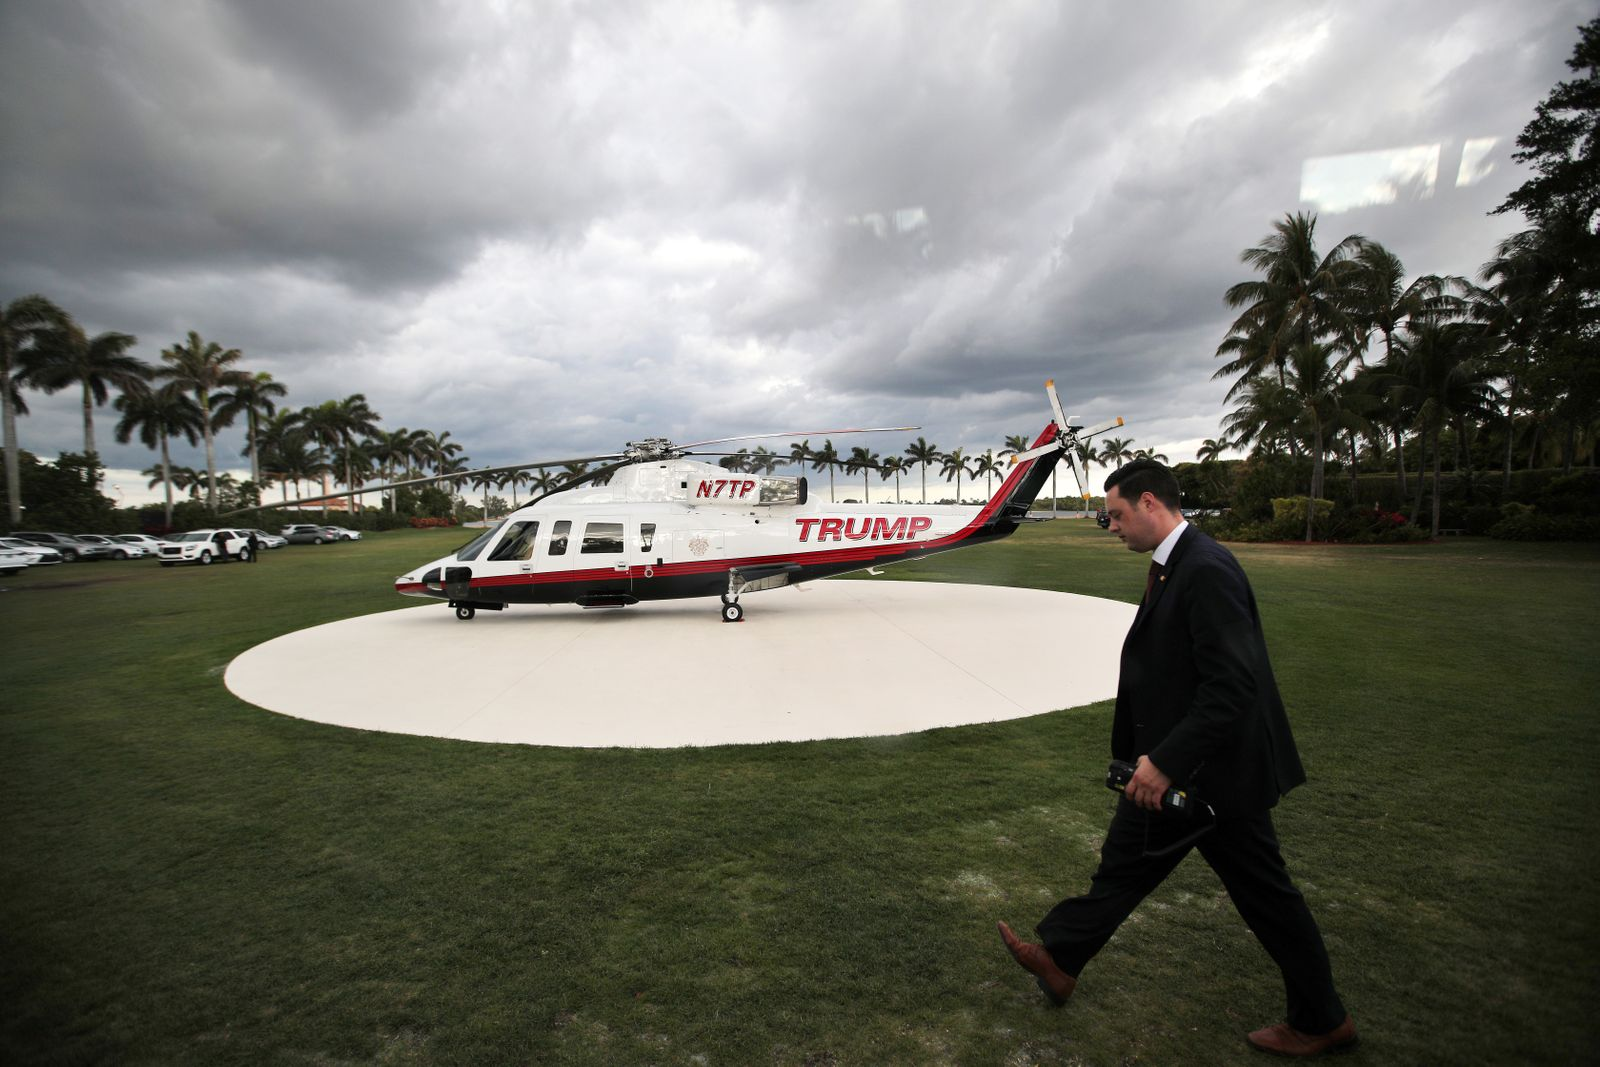 A members of the secret service walks by U.S. President Donald Trump's personal helicopter at Mar-a-Lago estate in Palm Beach, Florida, U.S.